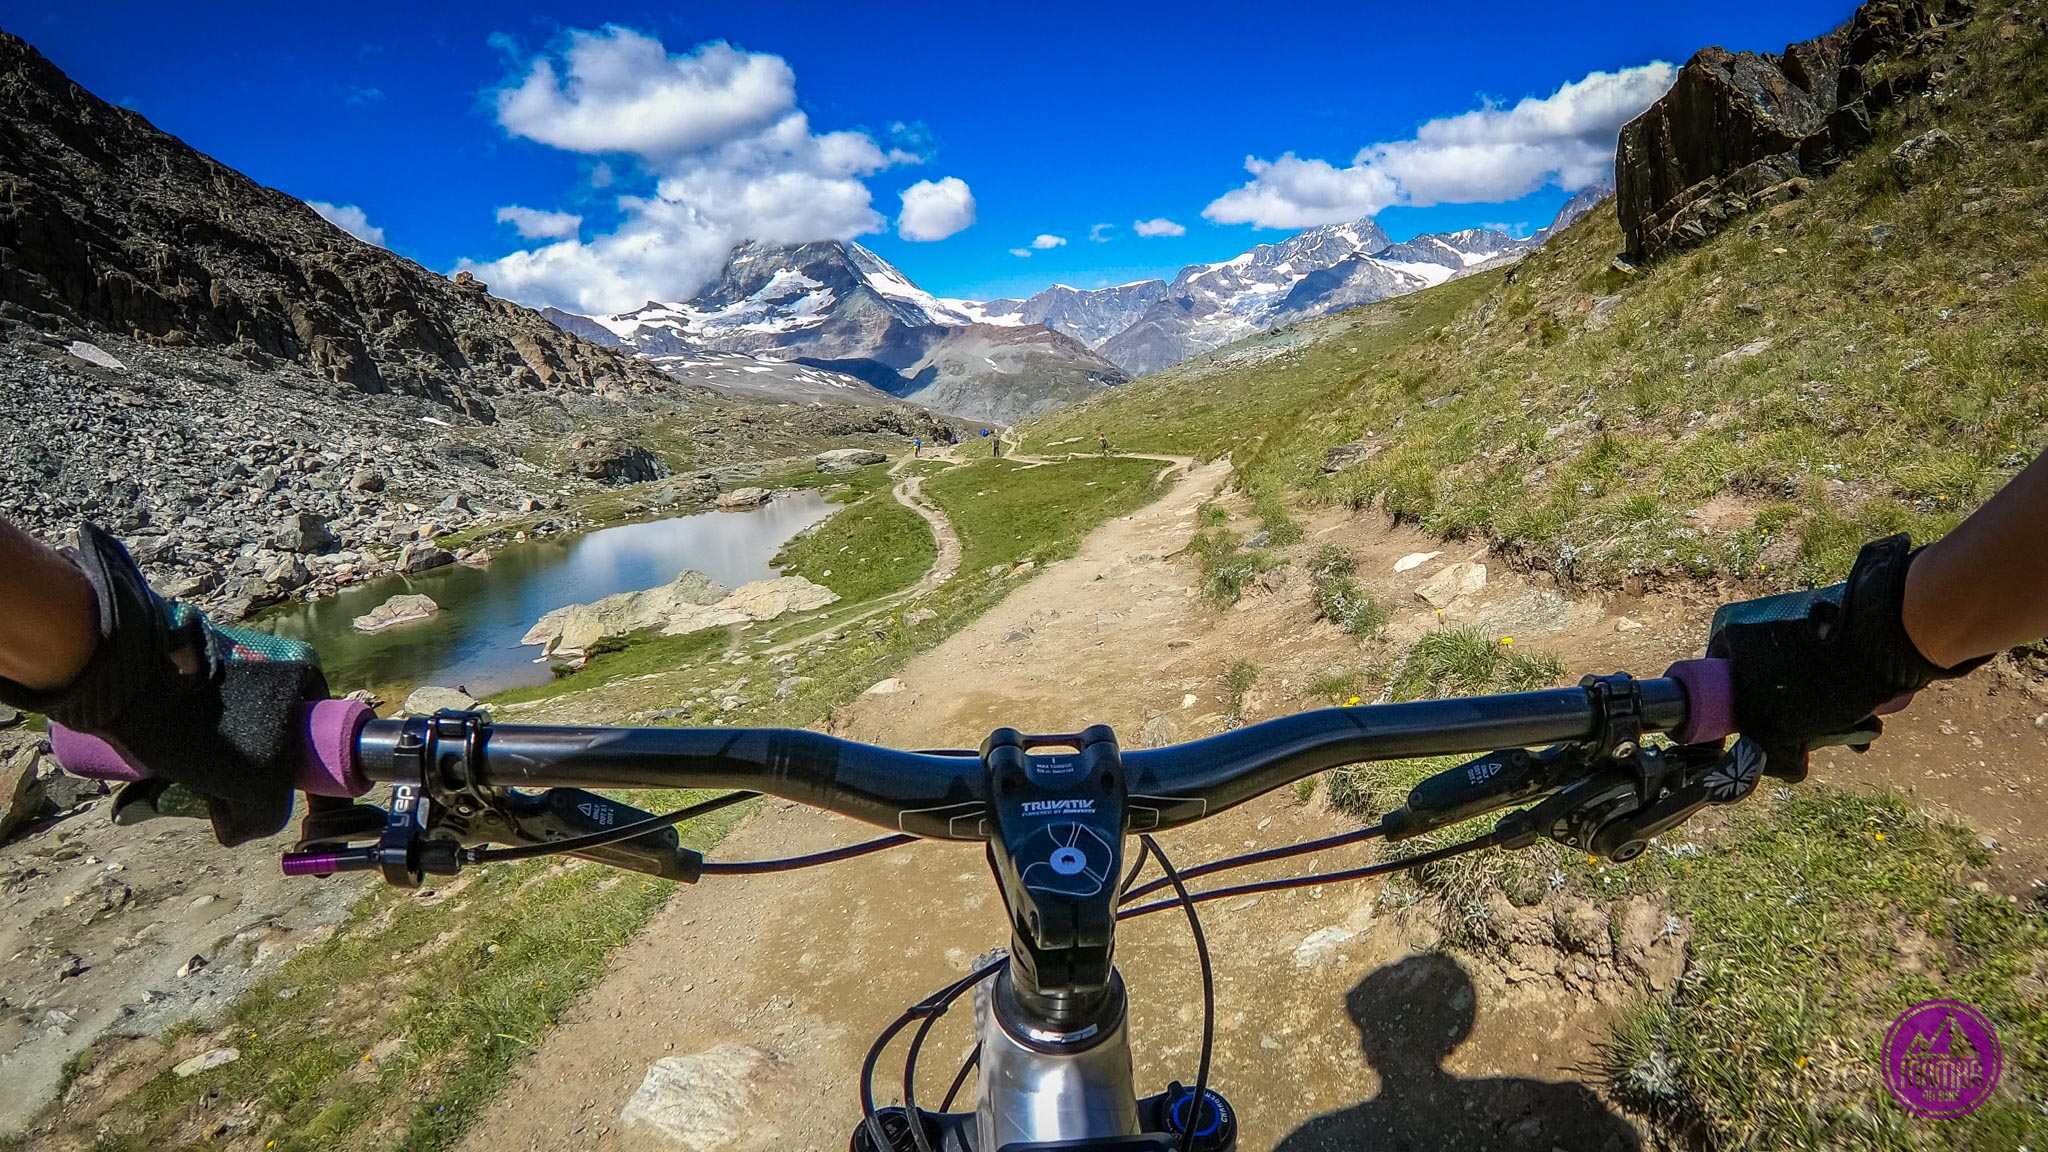 Zermatt - behind bars